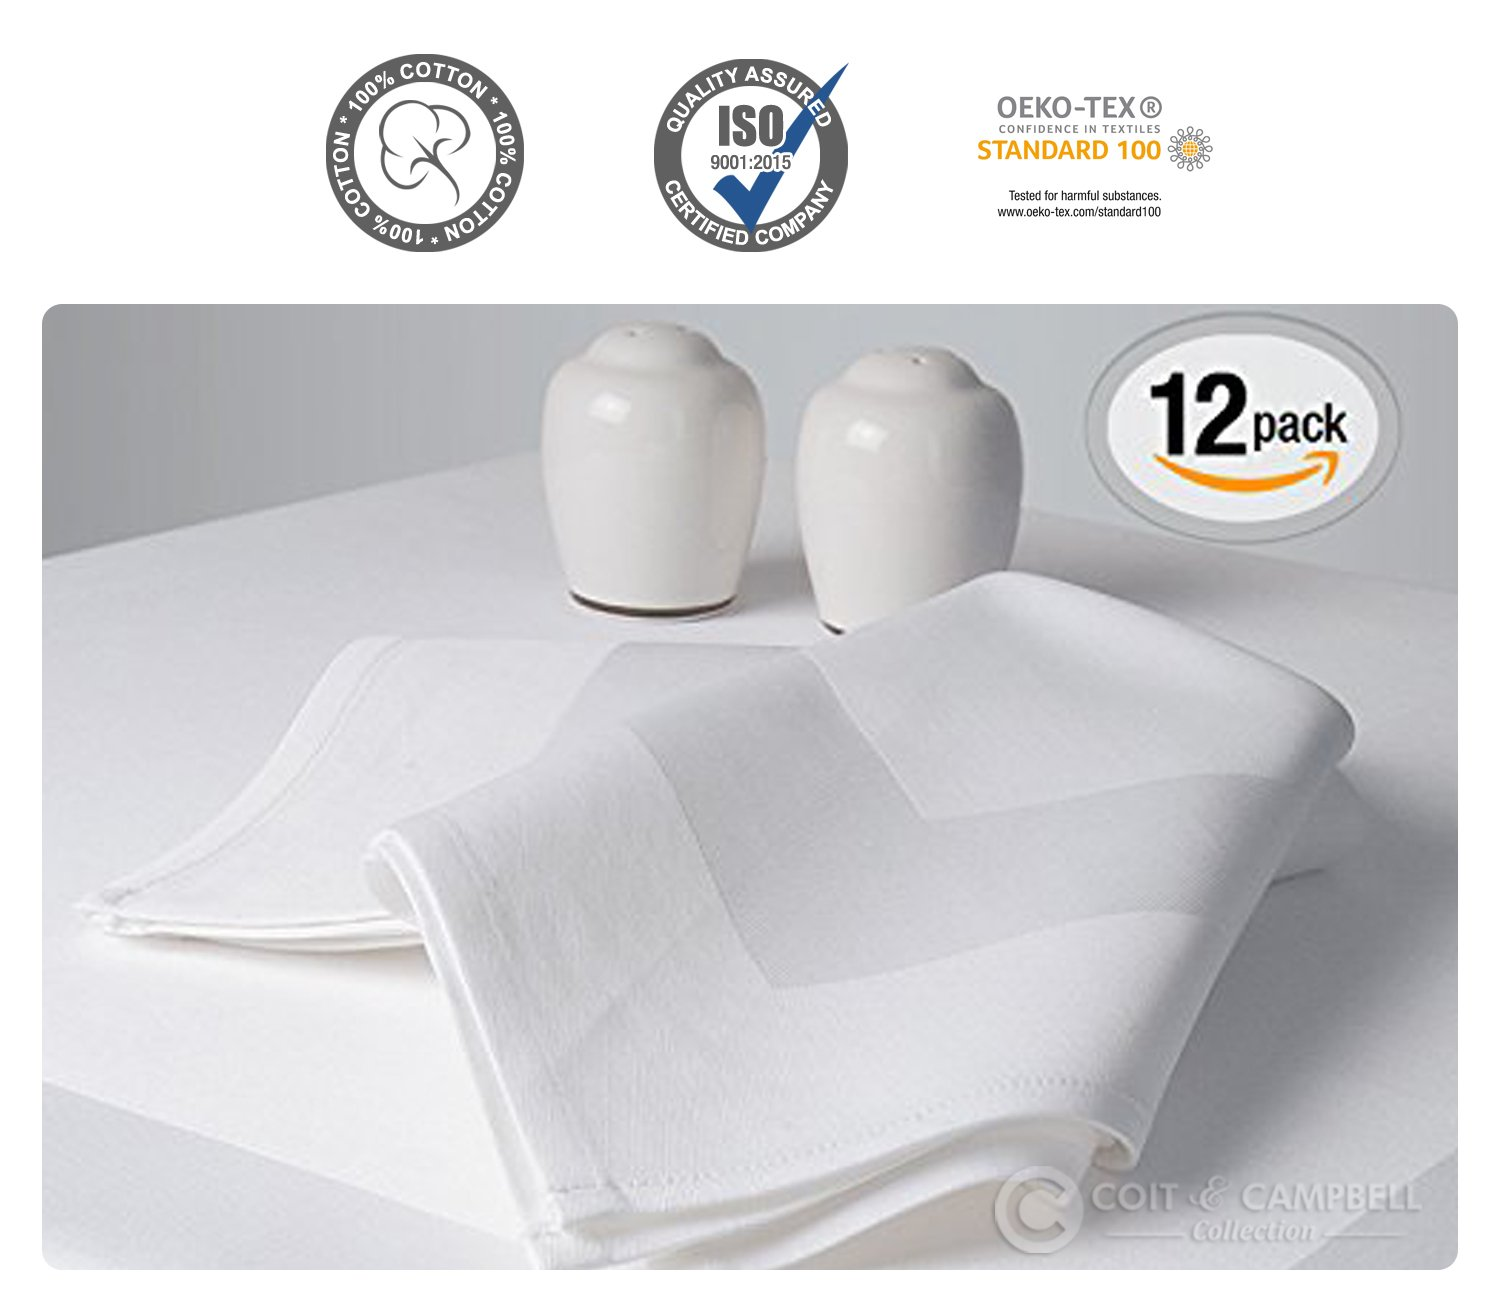 Luxury Angel White Satin Band Napkins - (20''x20'') 100% Cotton Dinner Napkins - Soft, Durable Hotel Quality - Ideal for Grand Events & Regular Home Use - 'Royal Collection' (White, 12 Pack)